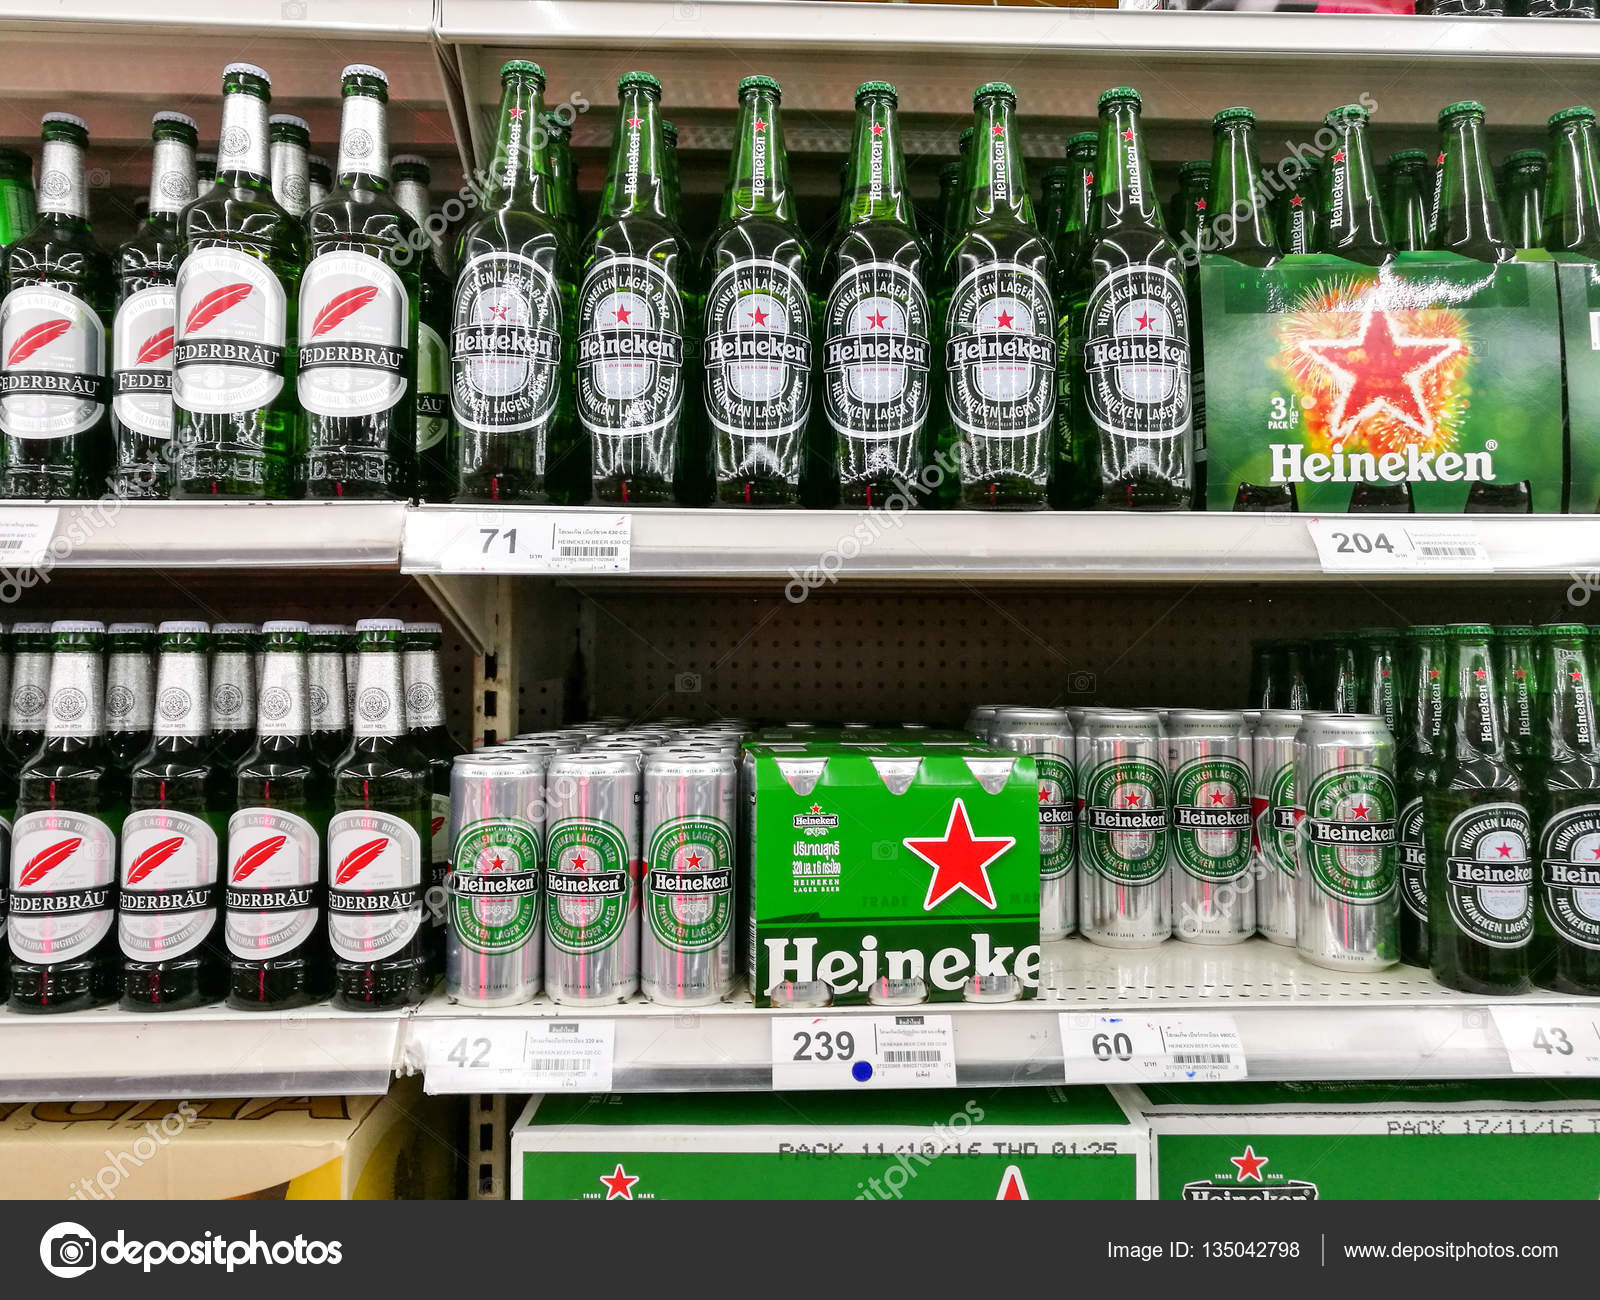 Heineken – Shelf Management